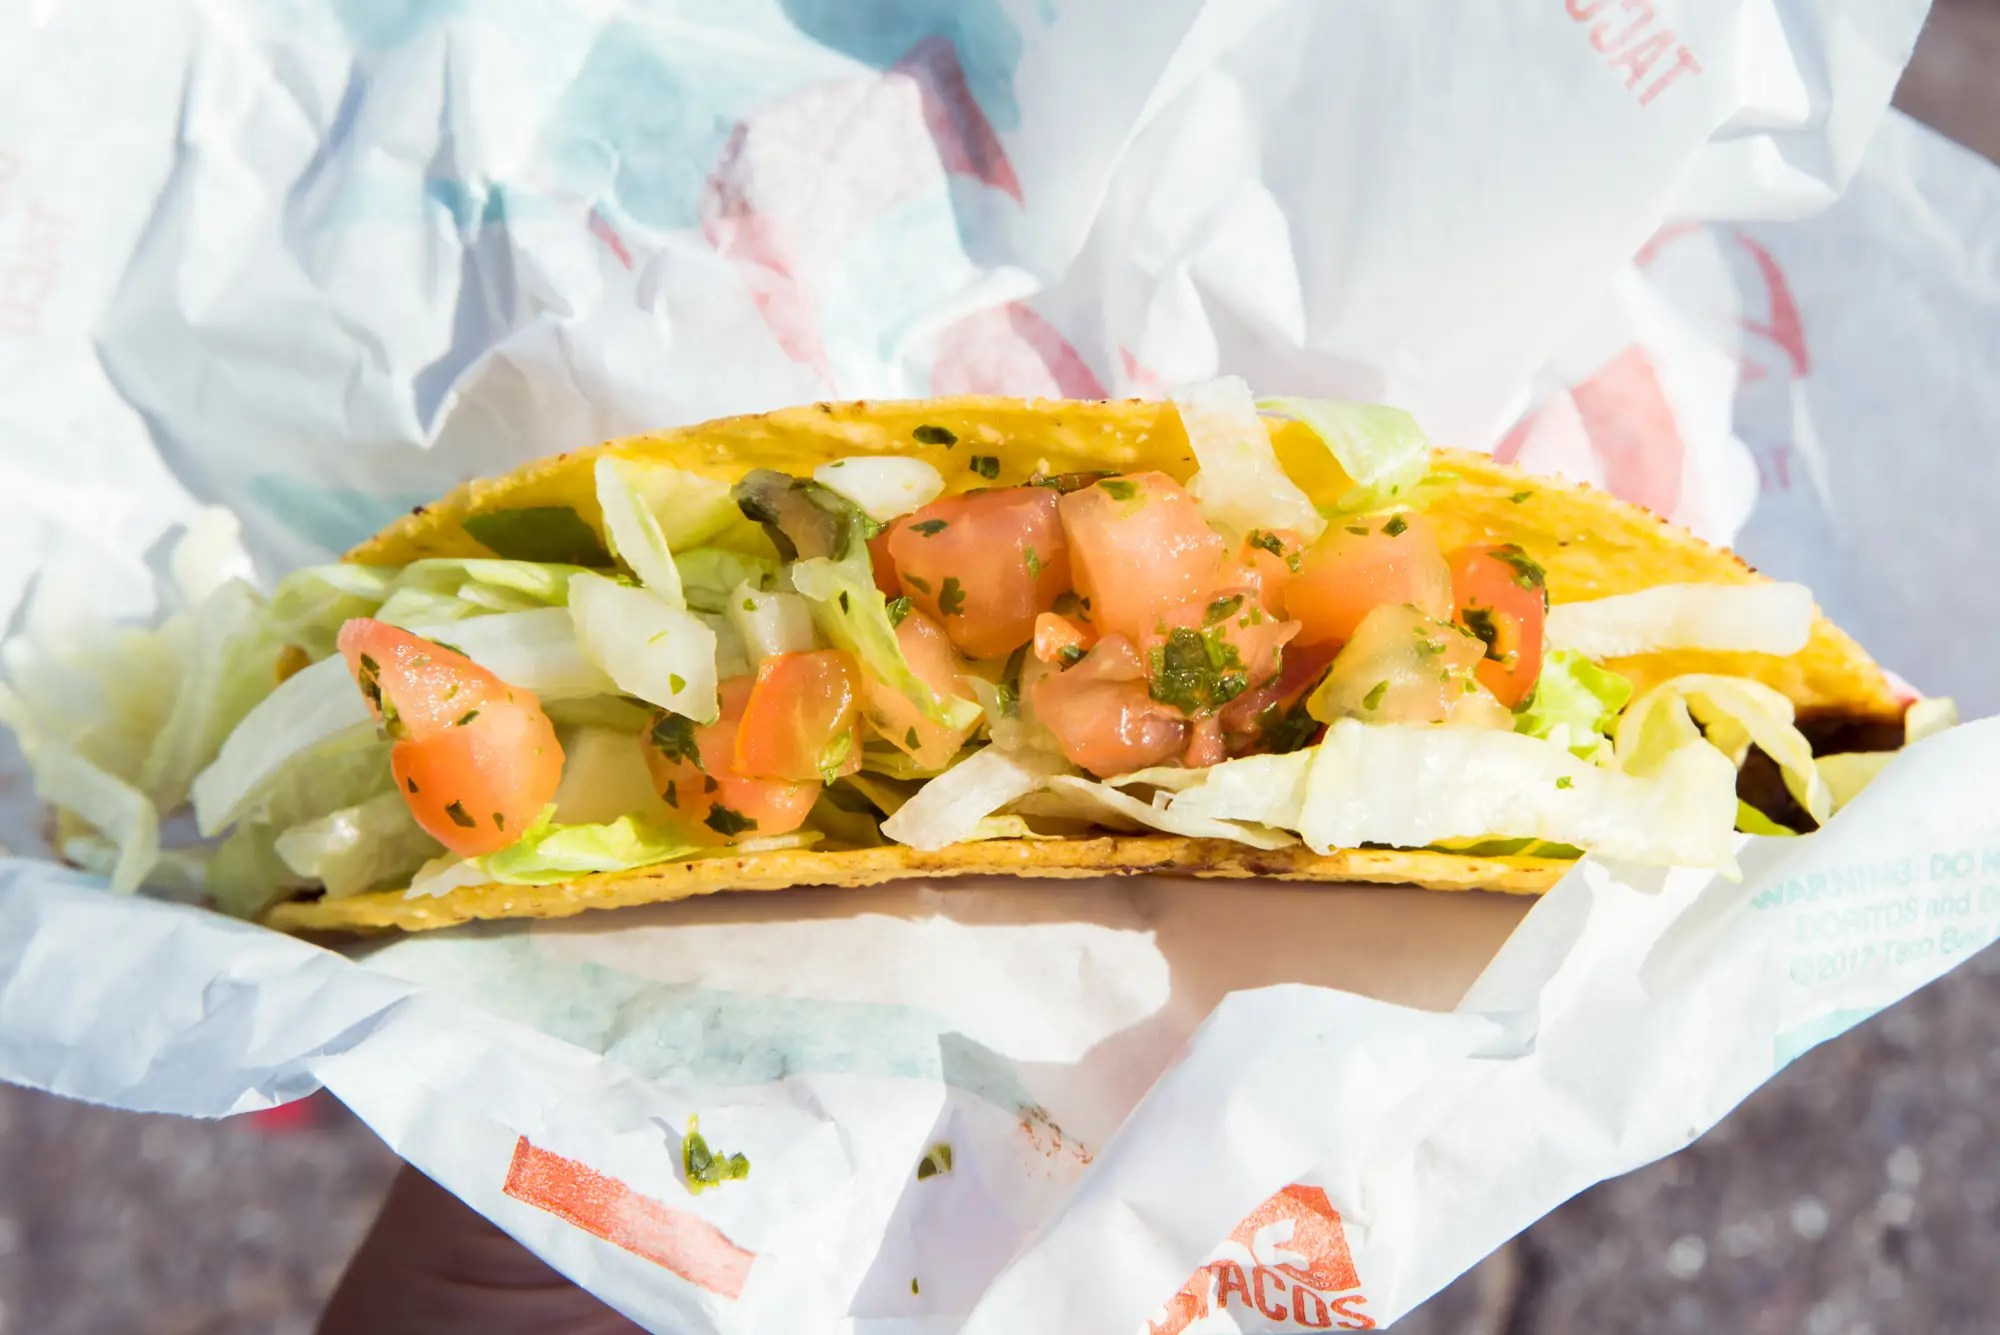 Charm Replaced Seasonedbeef Vegan Foods Se Crunchy I Ordered Crunchy Taco Black It Looked Really Taco Bell Has A Surprisingly Selection nice food Taco Bell Fresco Menu